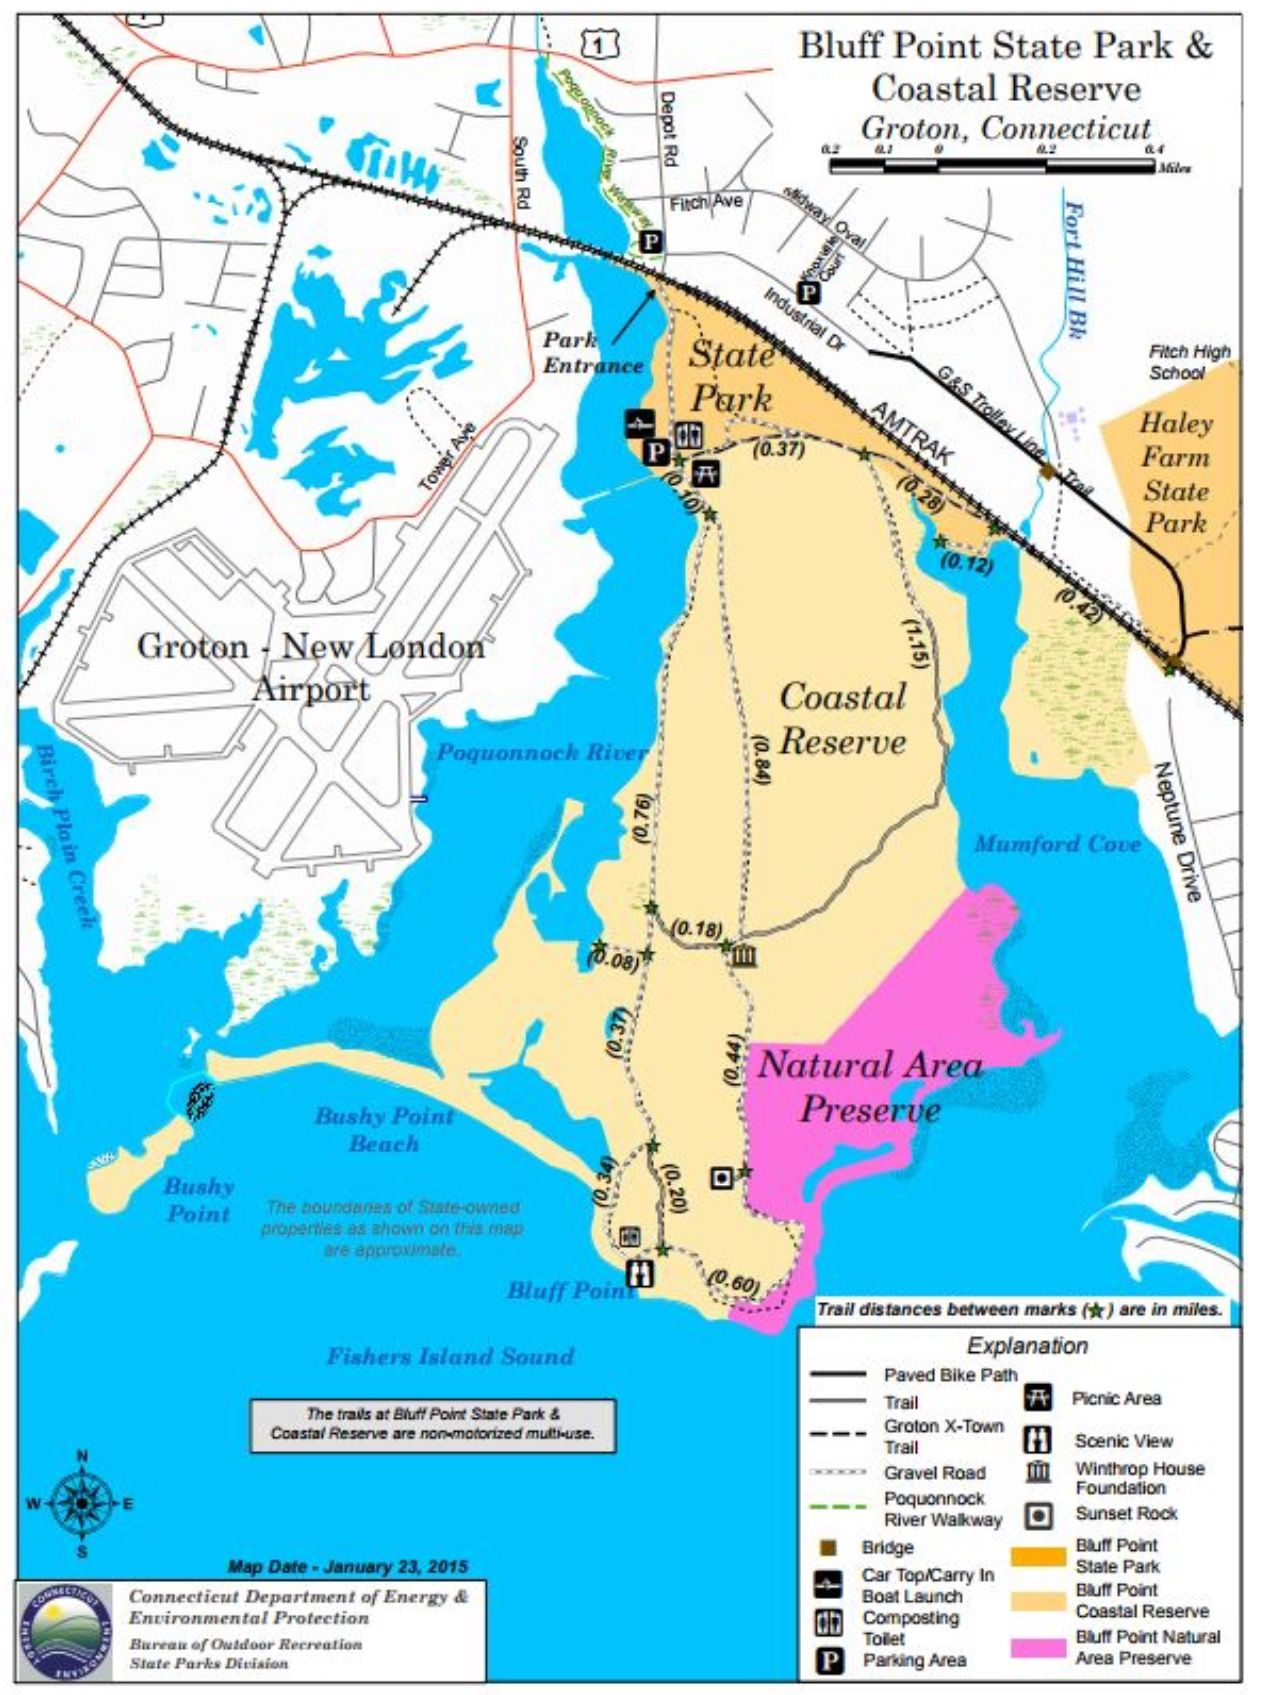 Bluff Point map | Connecticut | State parks, Connecticut, Map on ct united states map, conn state map, st of ct map, connecticut road map, ct county map, ct highway map, ct city map, stamford ct road map, ct state camping, ct new london map, connecticut state map,